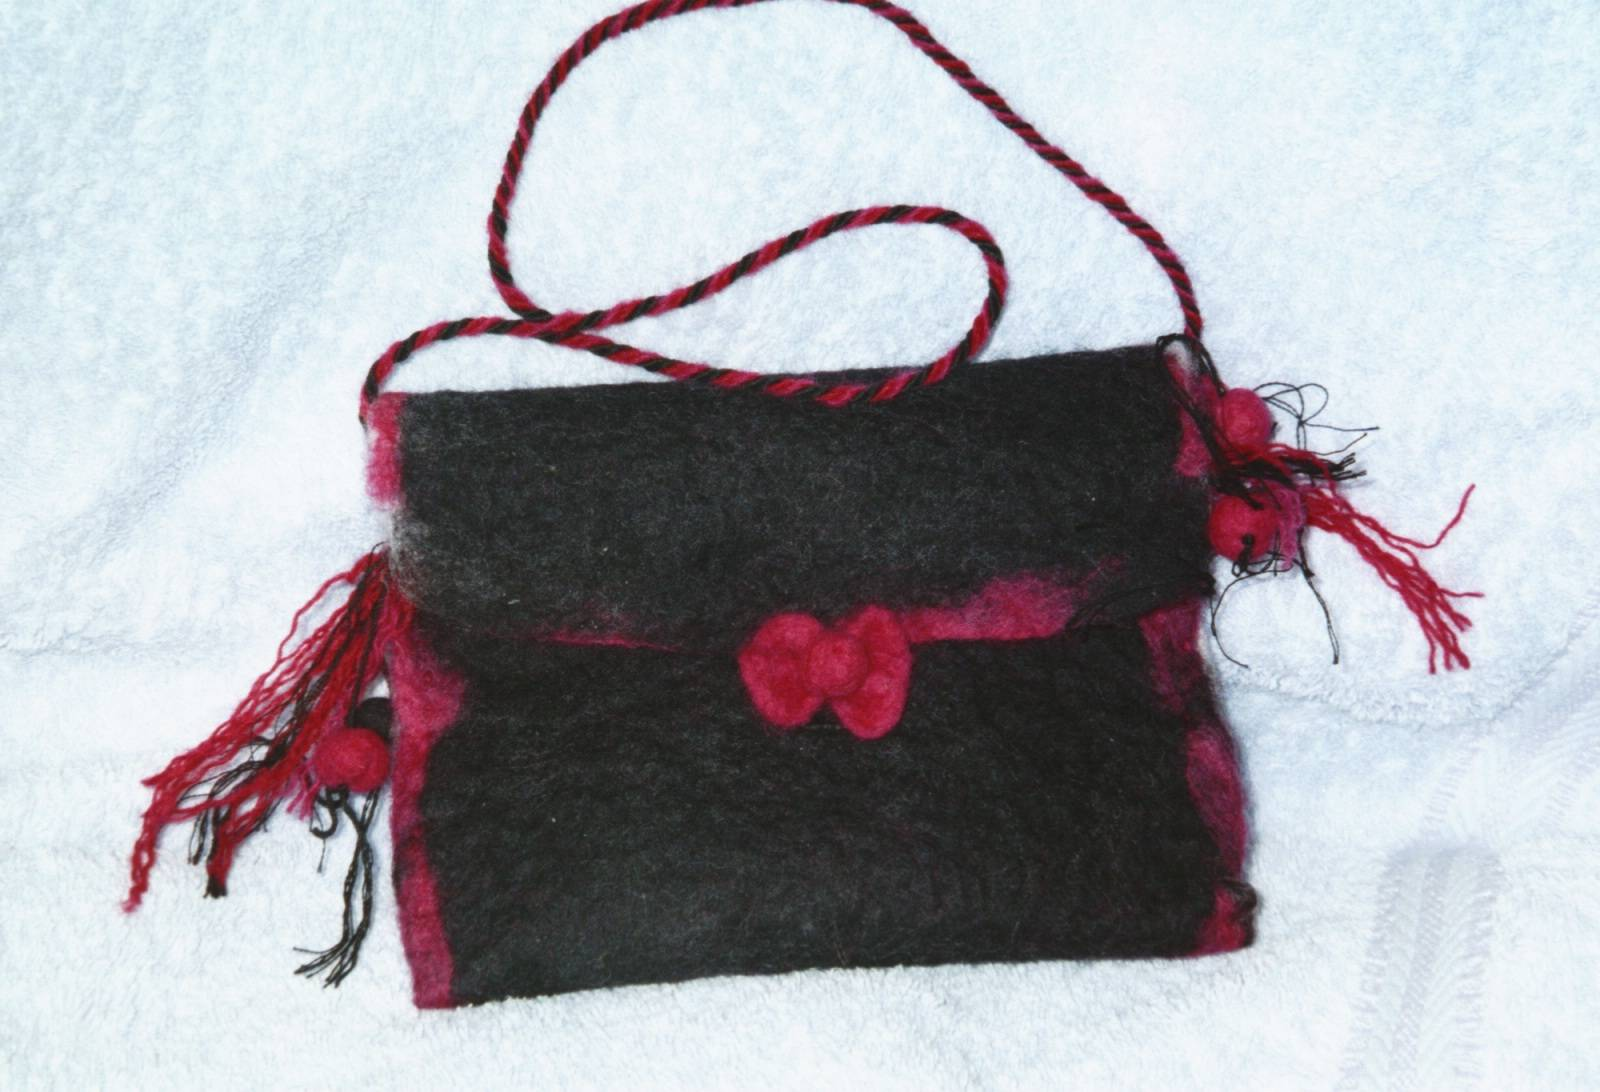 Black bag - handmade felt